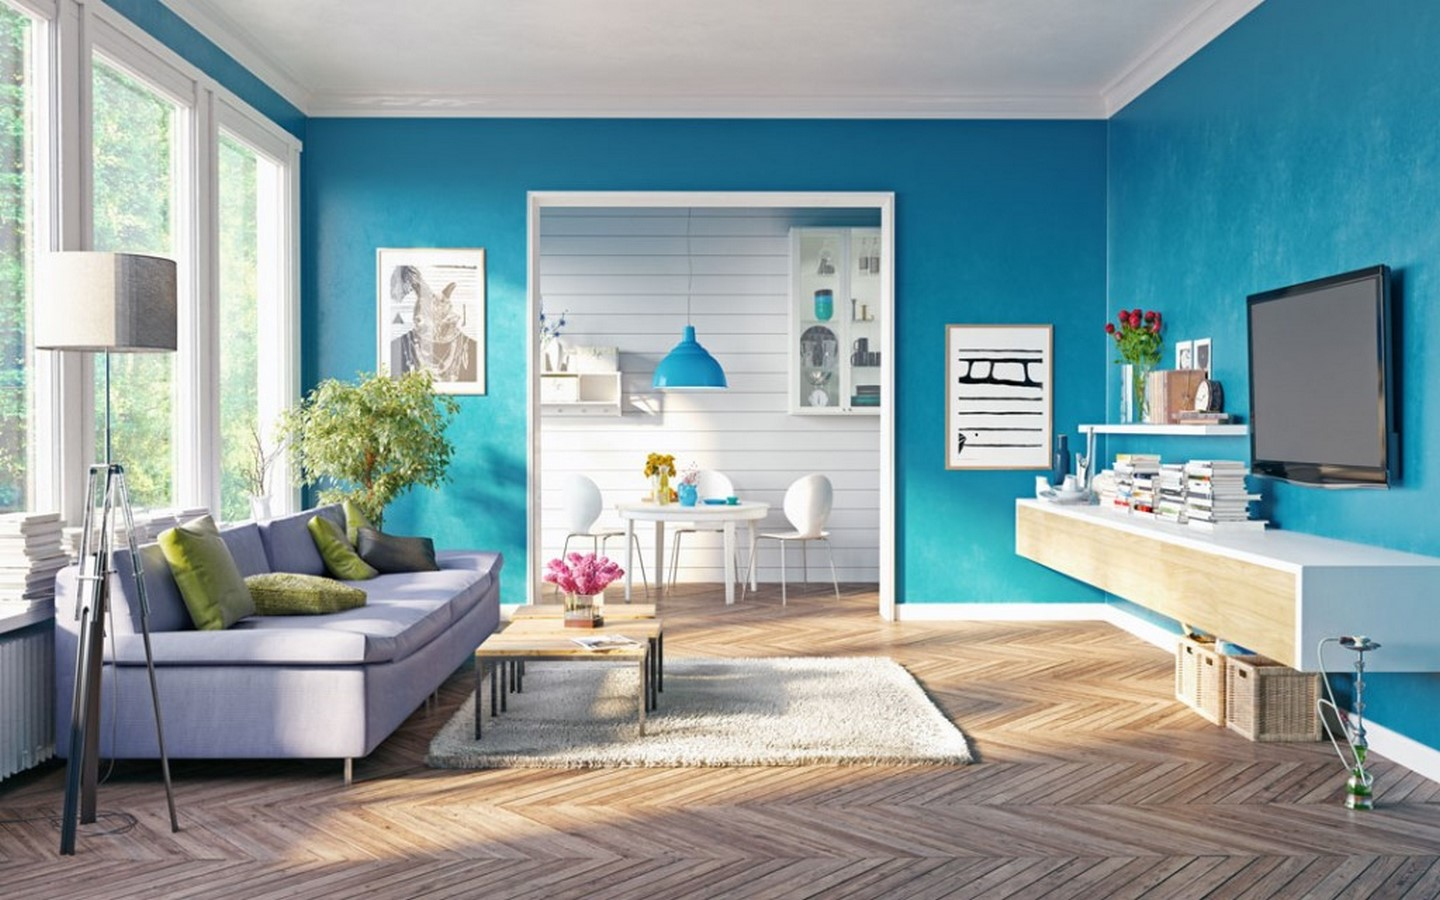 10 Tips to Renovate your House without hampering your budget - Sheet16